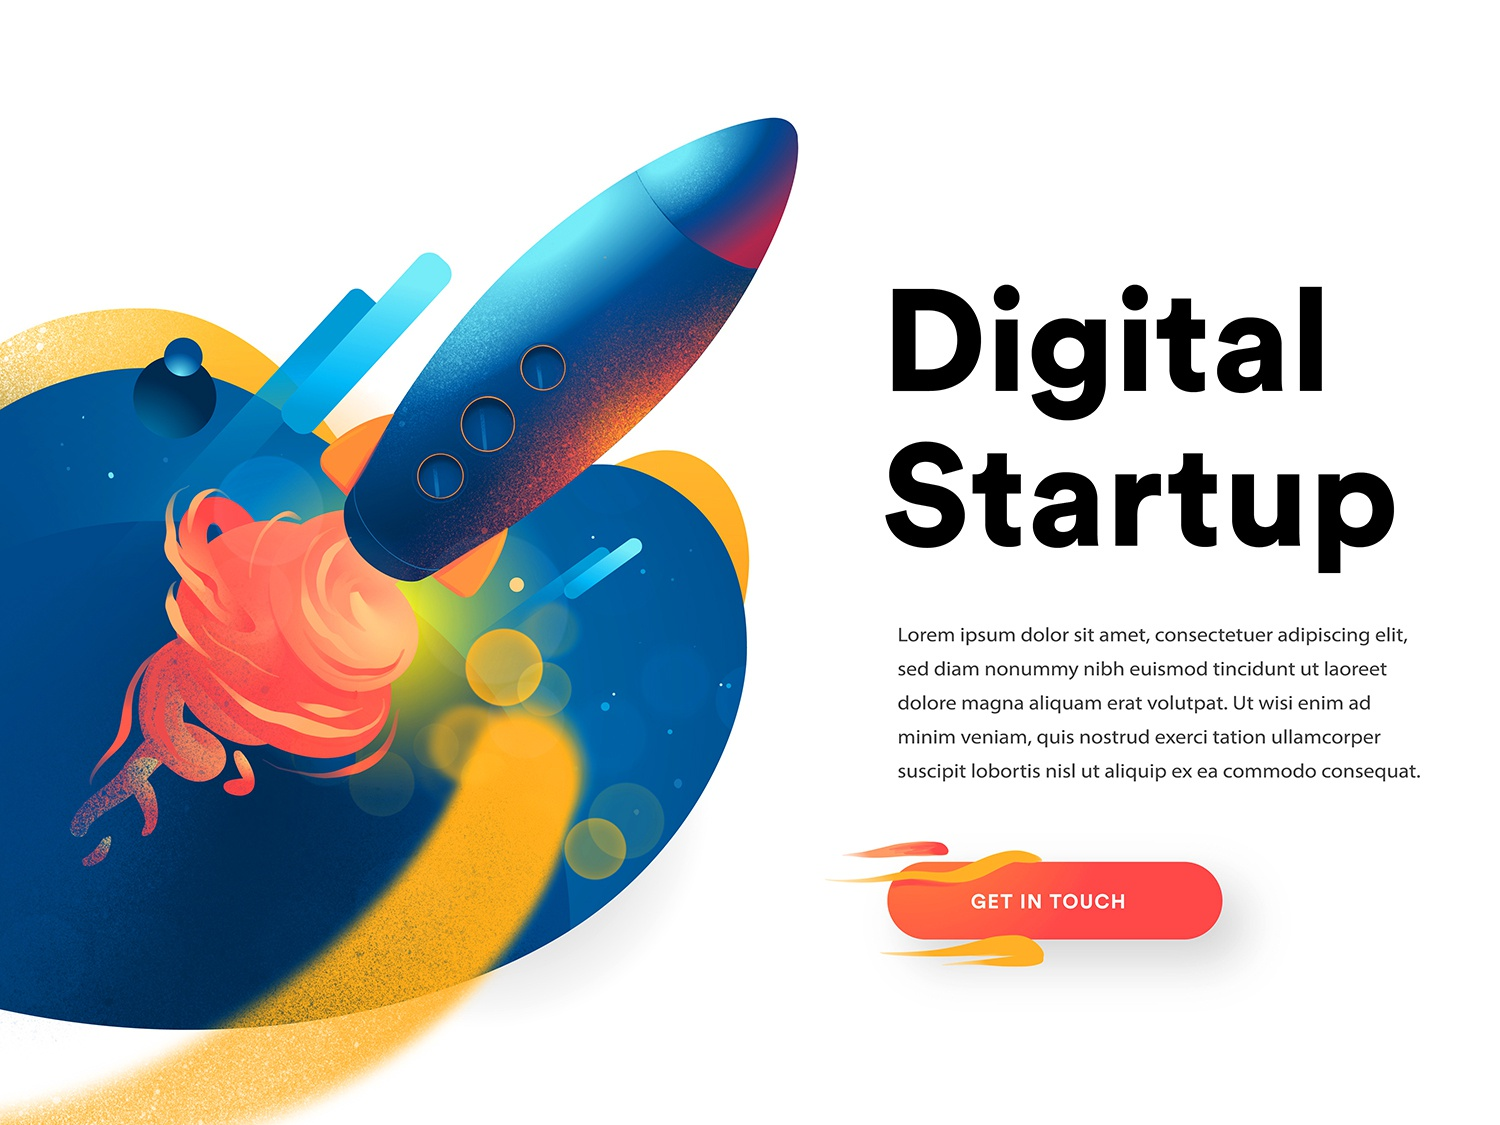 Digital Startup Launched wow hurca homepage hero image landing page startup boost mission rocket launch